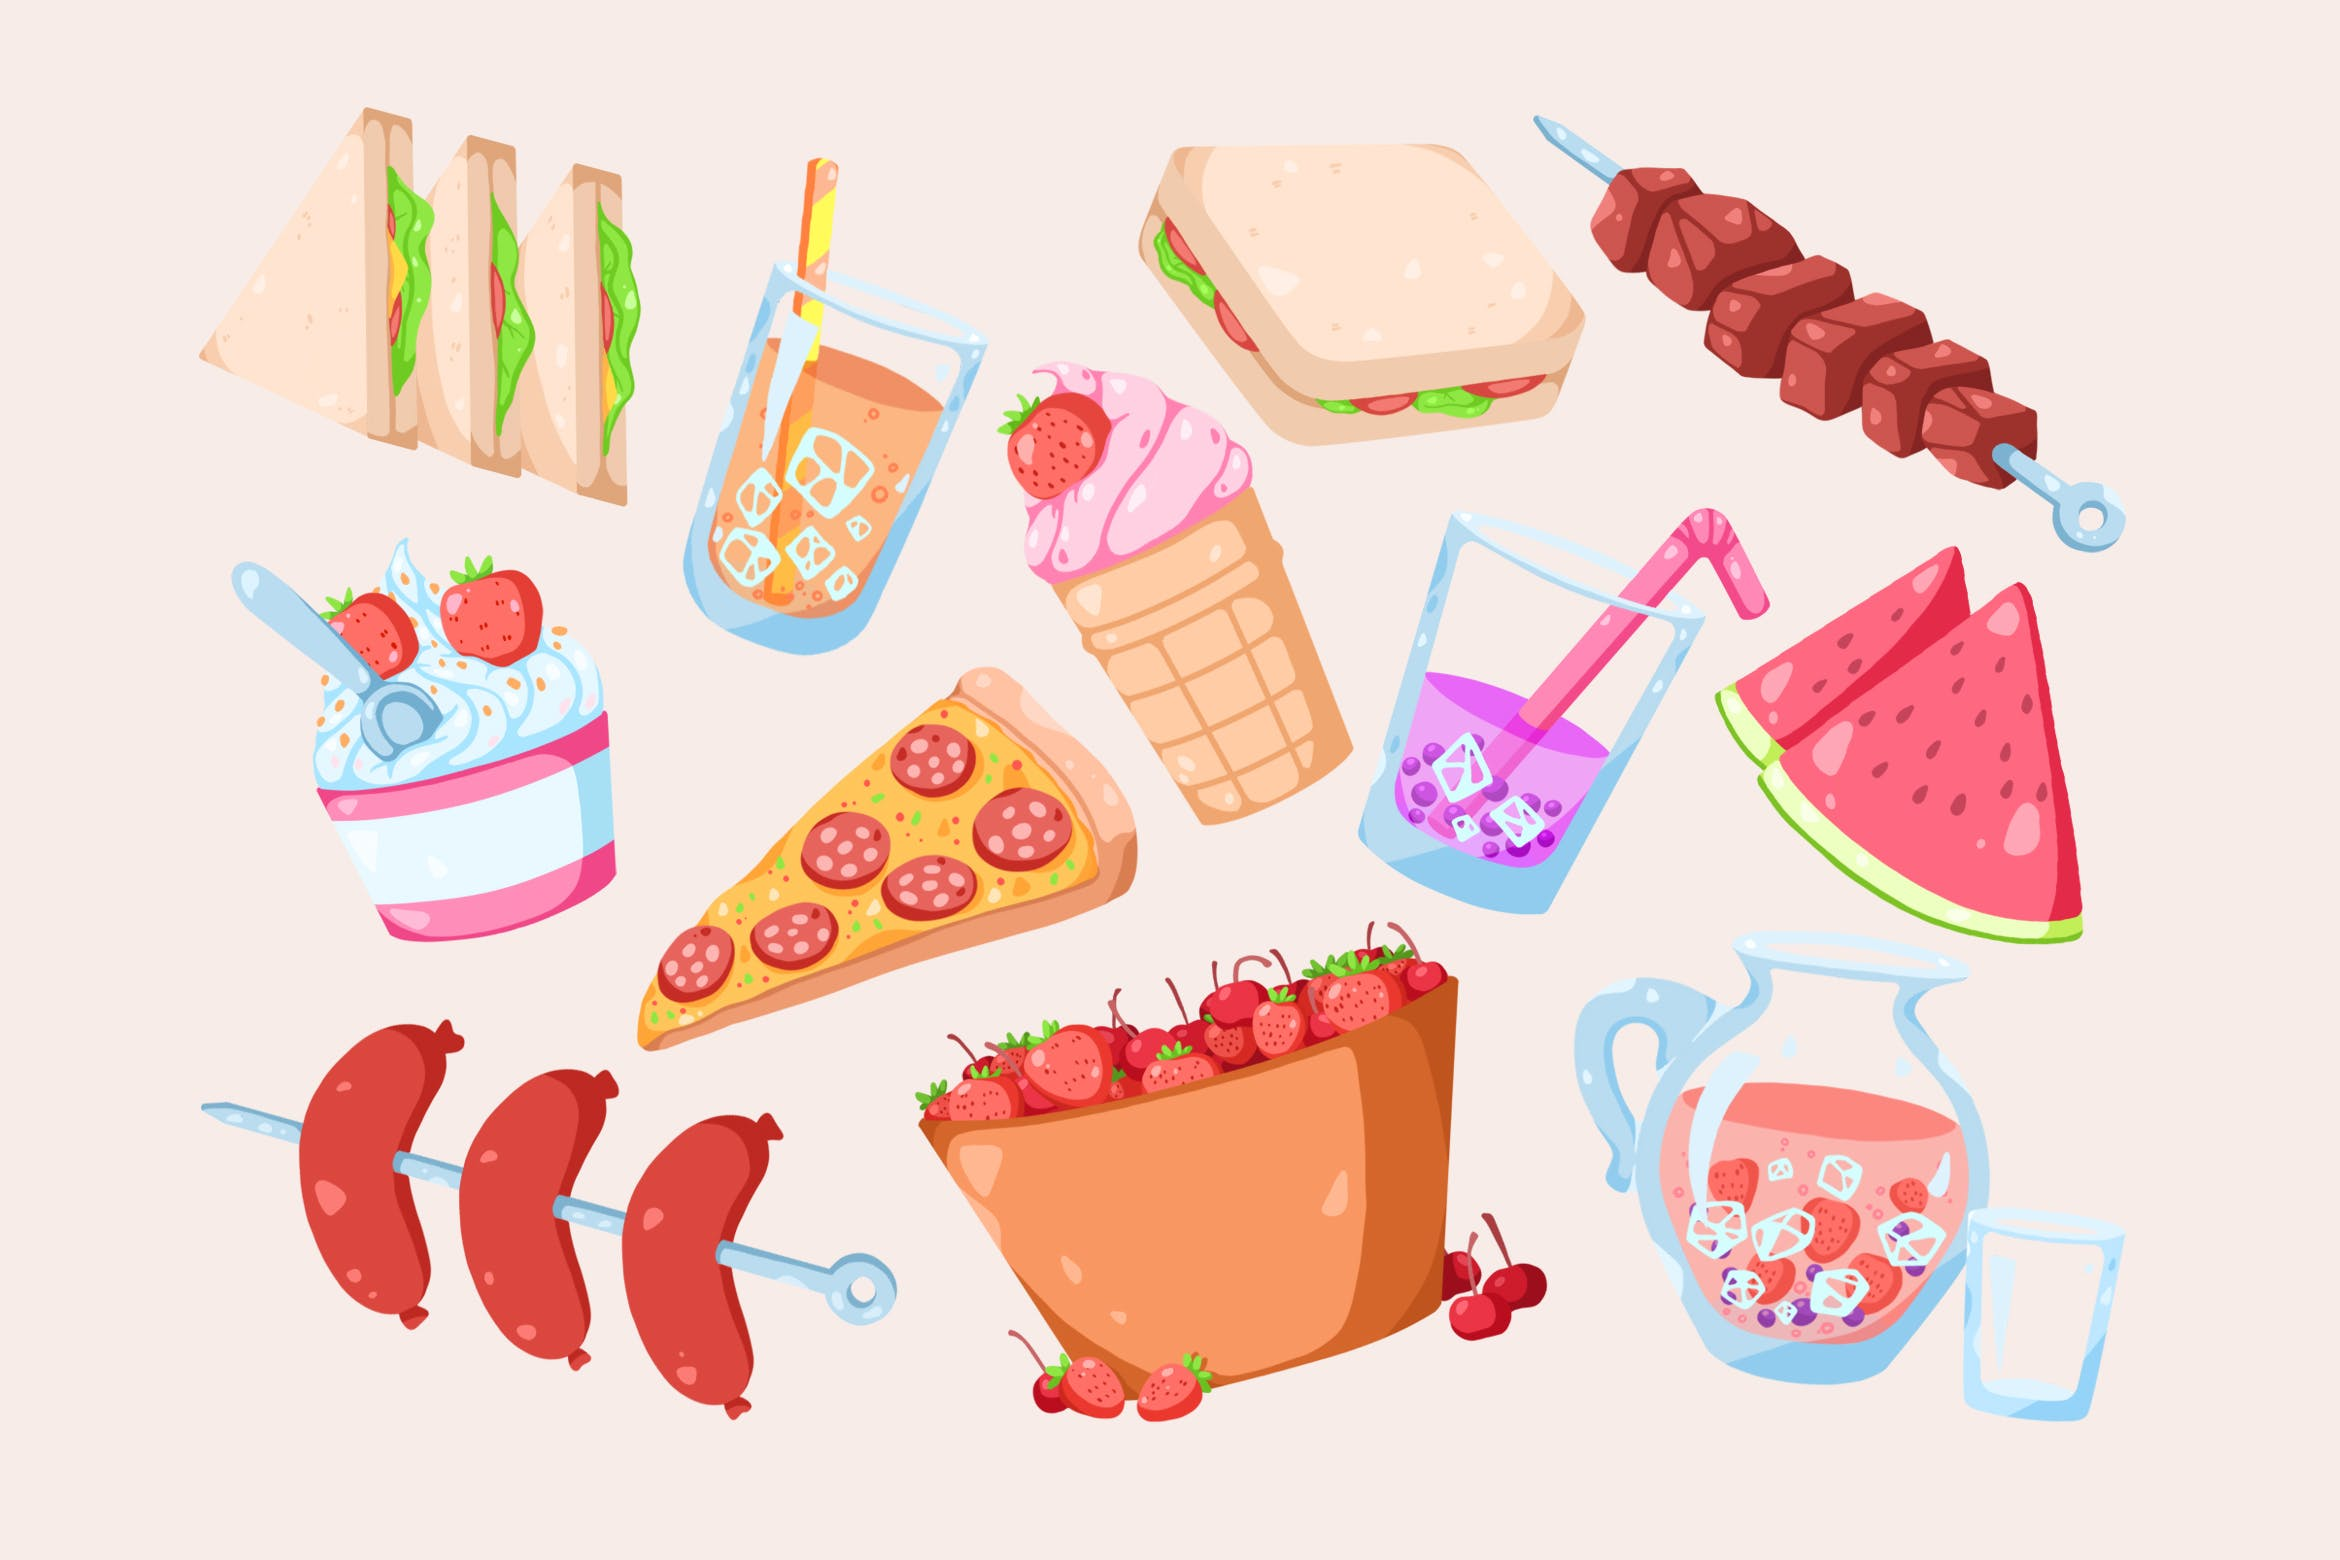 Treats images clipart clipart freeuse stock Summer Treats Clipart by Jumsoft on Envato Elements clipart freeuse stock